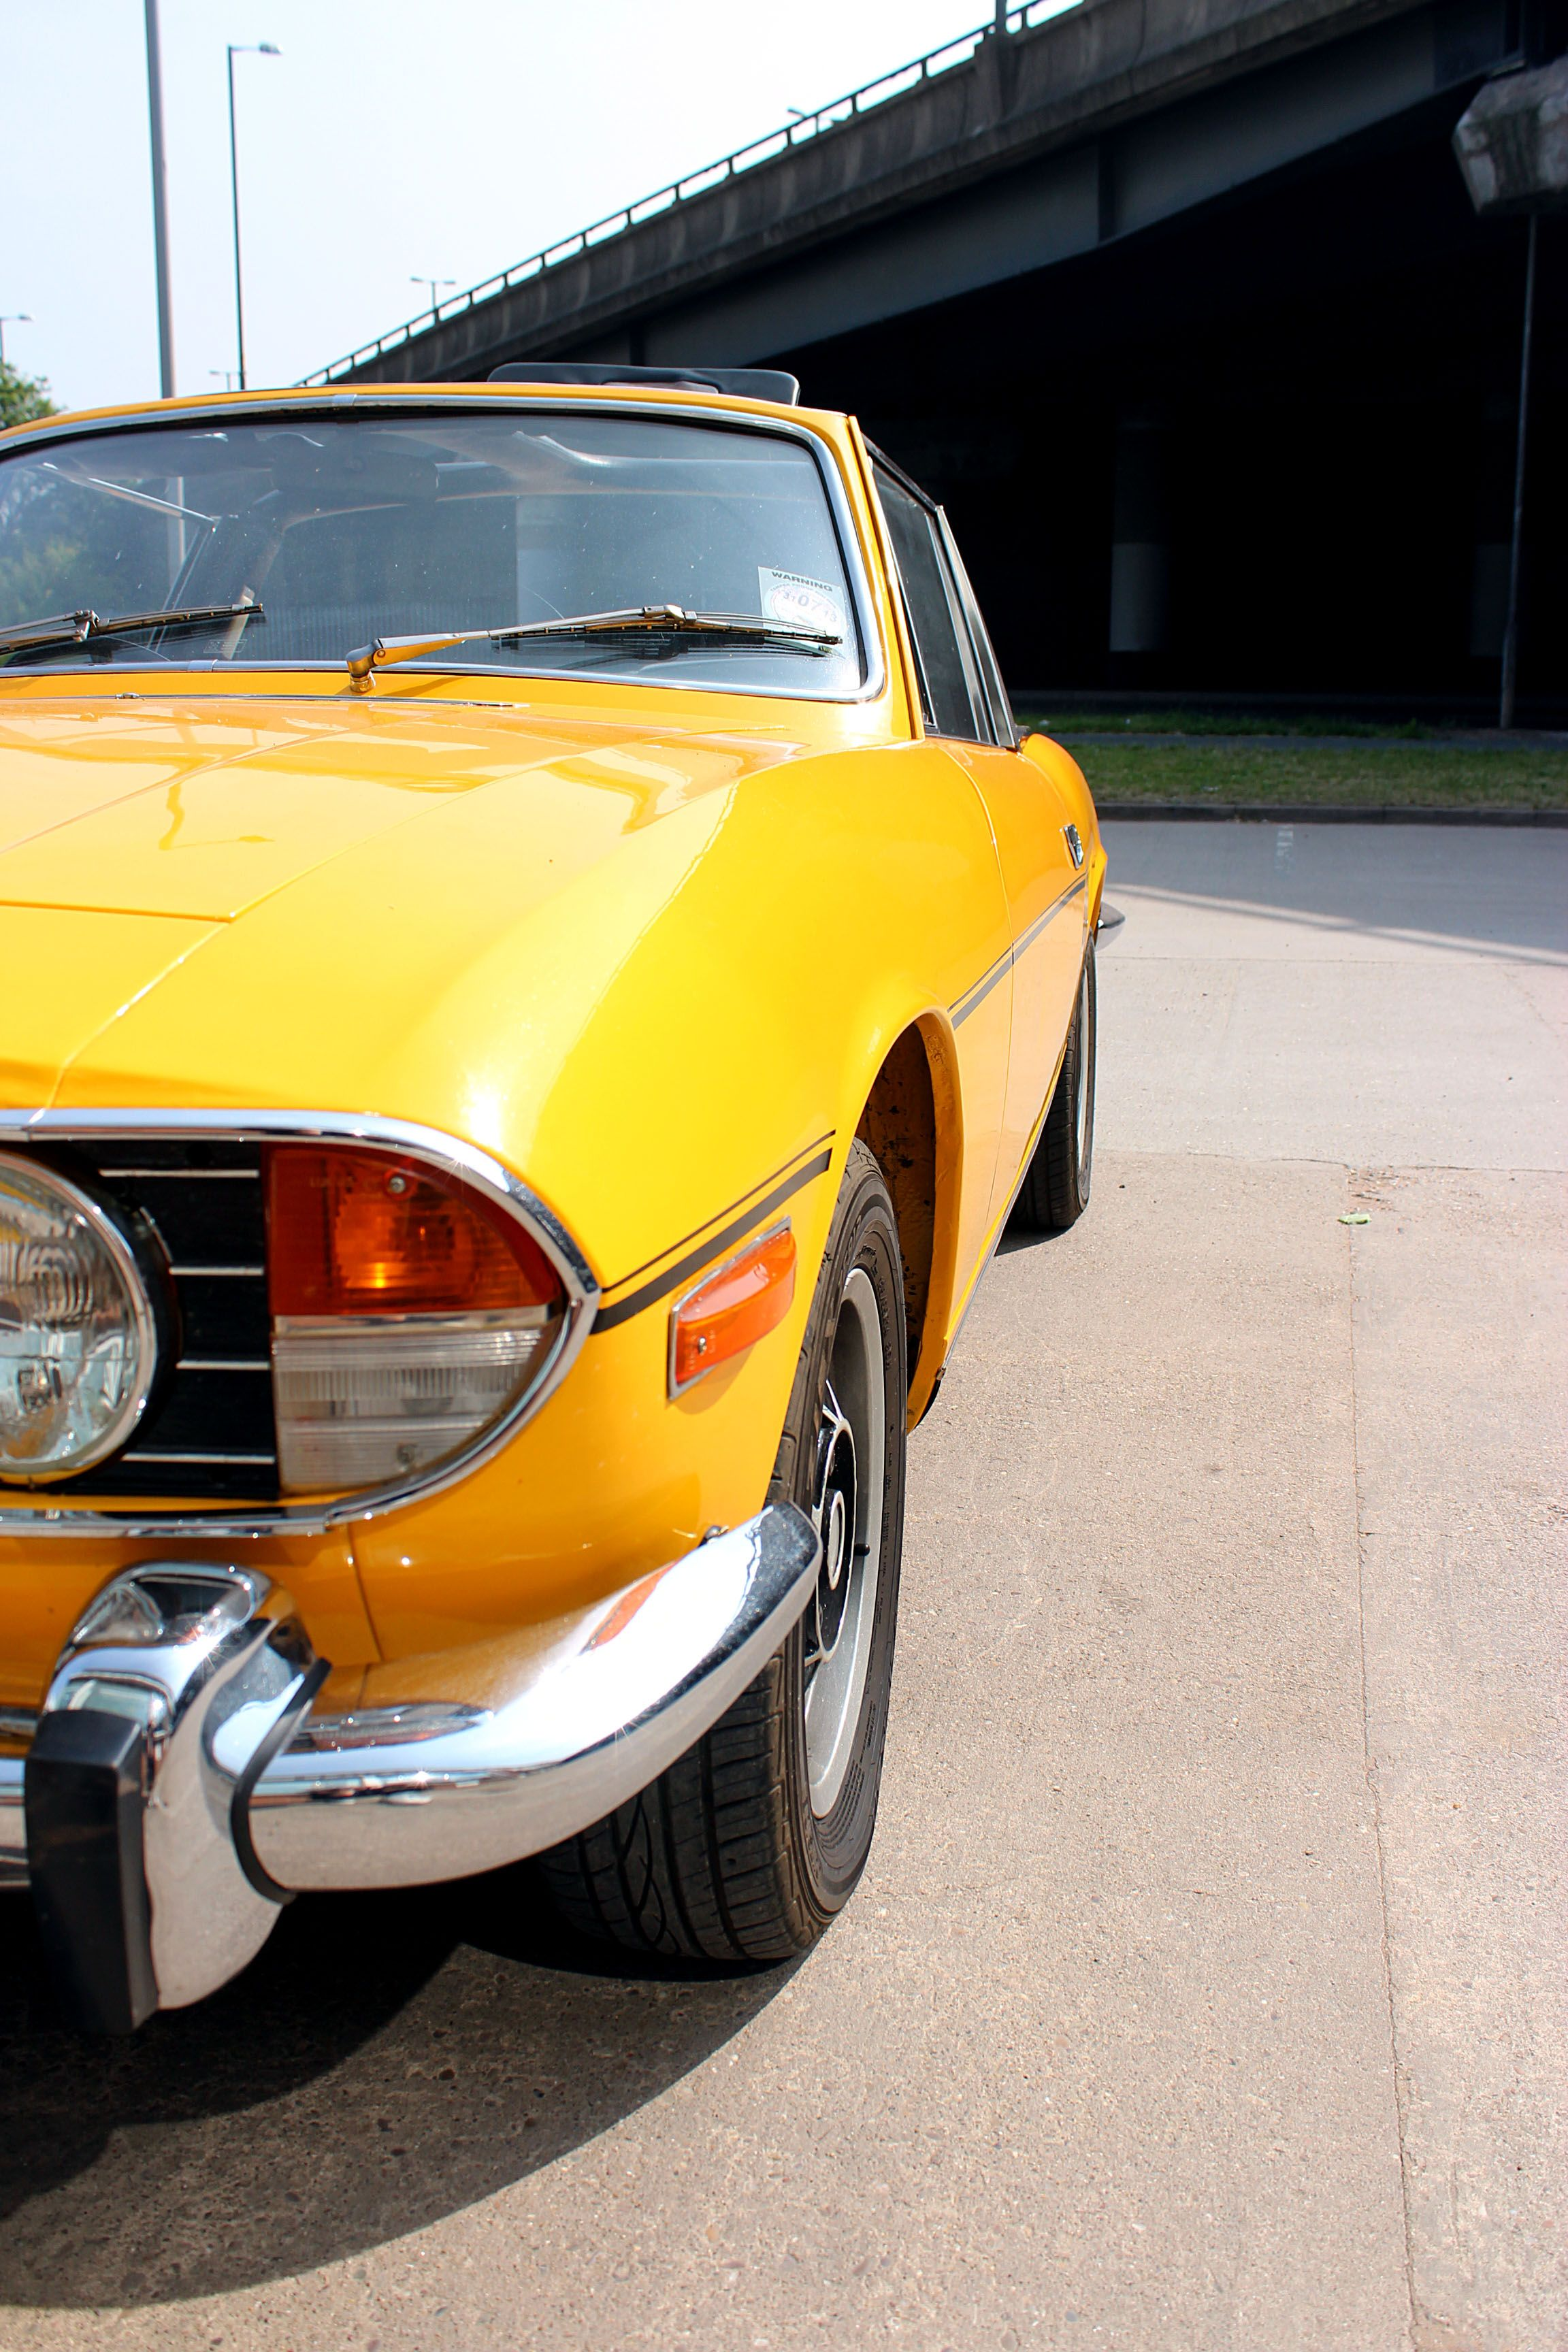 Triumph Stag at the David Manners Group. For ALL Triumph Car Parts, please visit our website http://www.jagspares.co.uk/Abingdon/company.asp